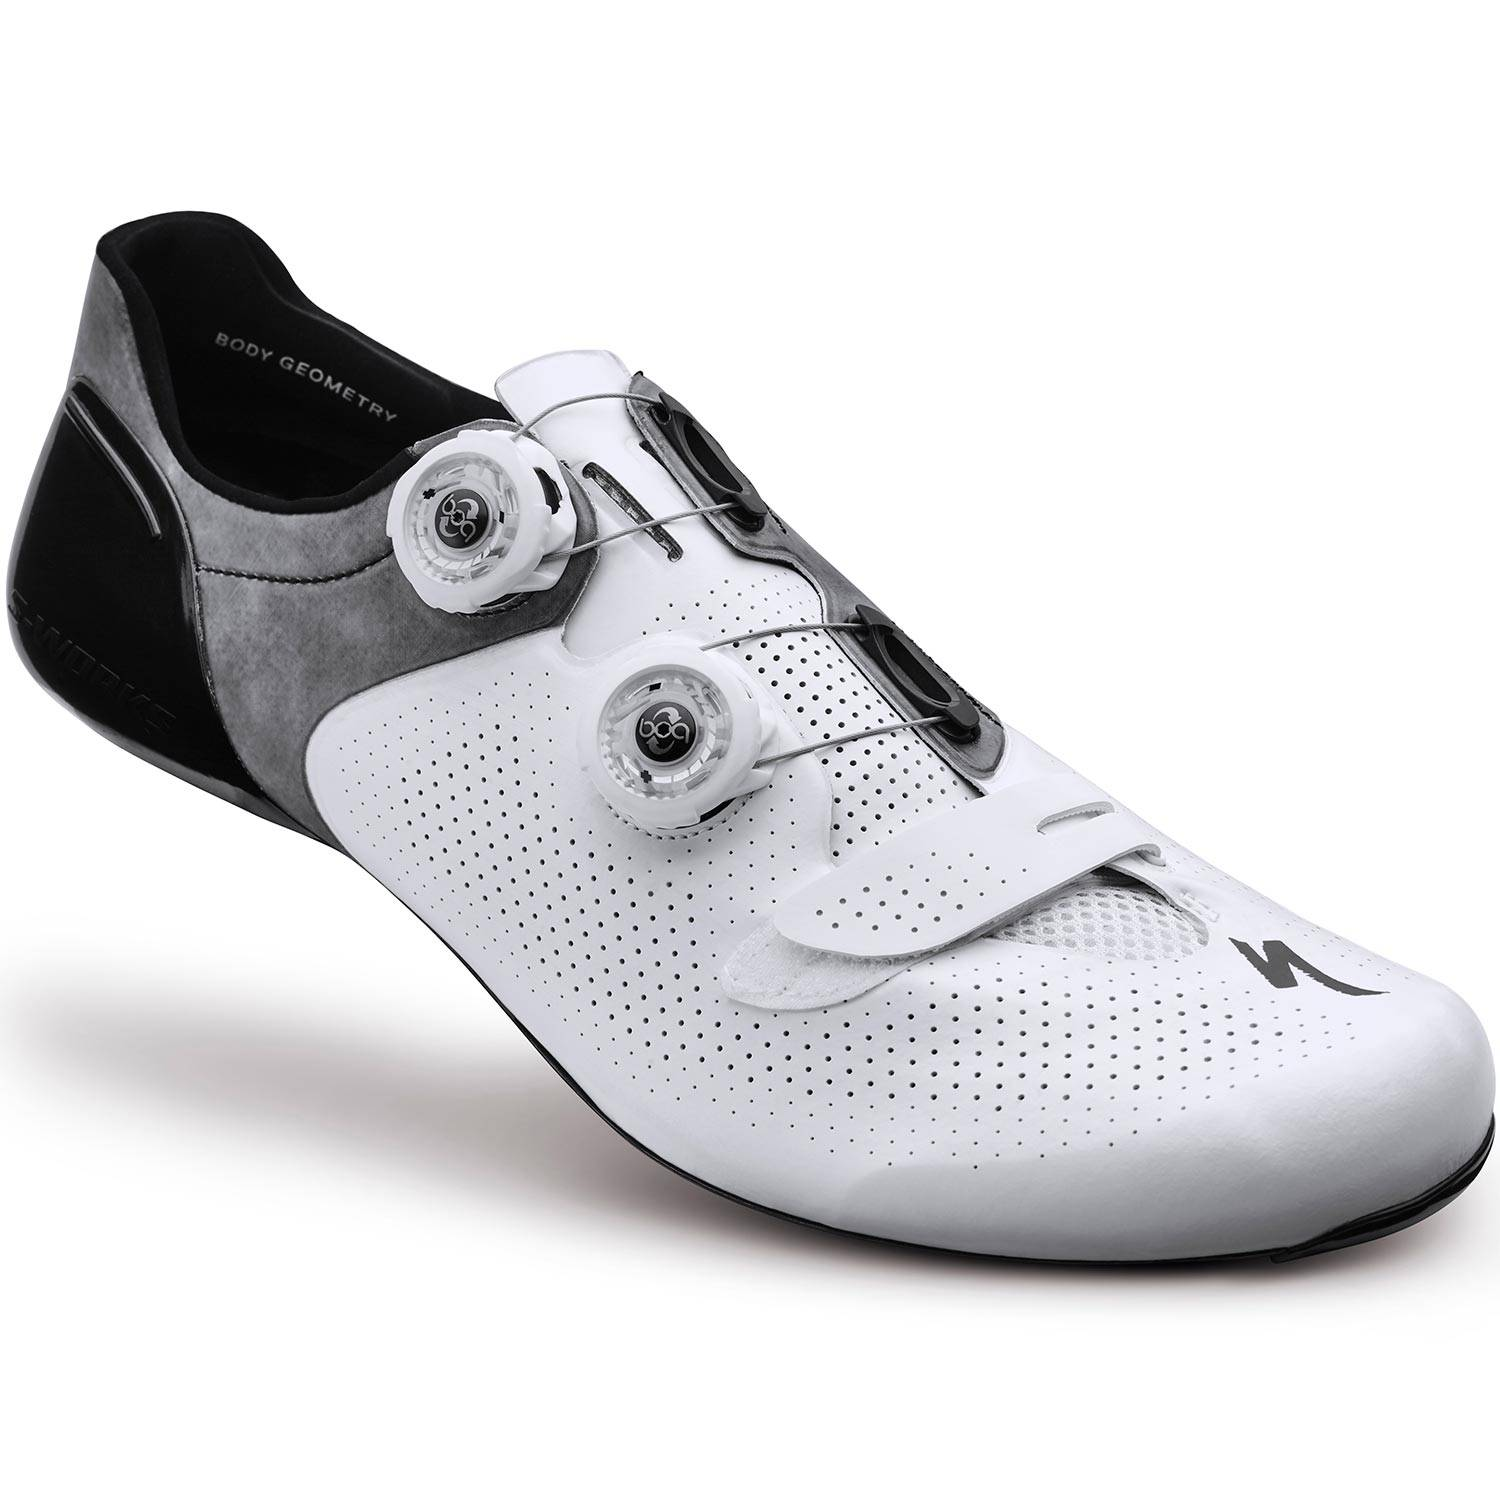 Cycling shoes Specialized S-Works Road 6 2018